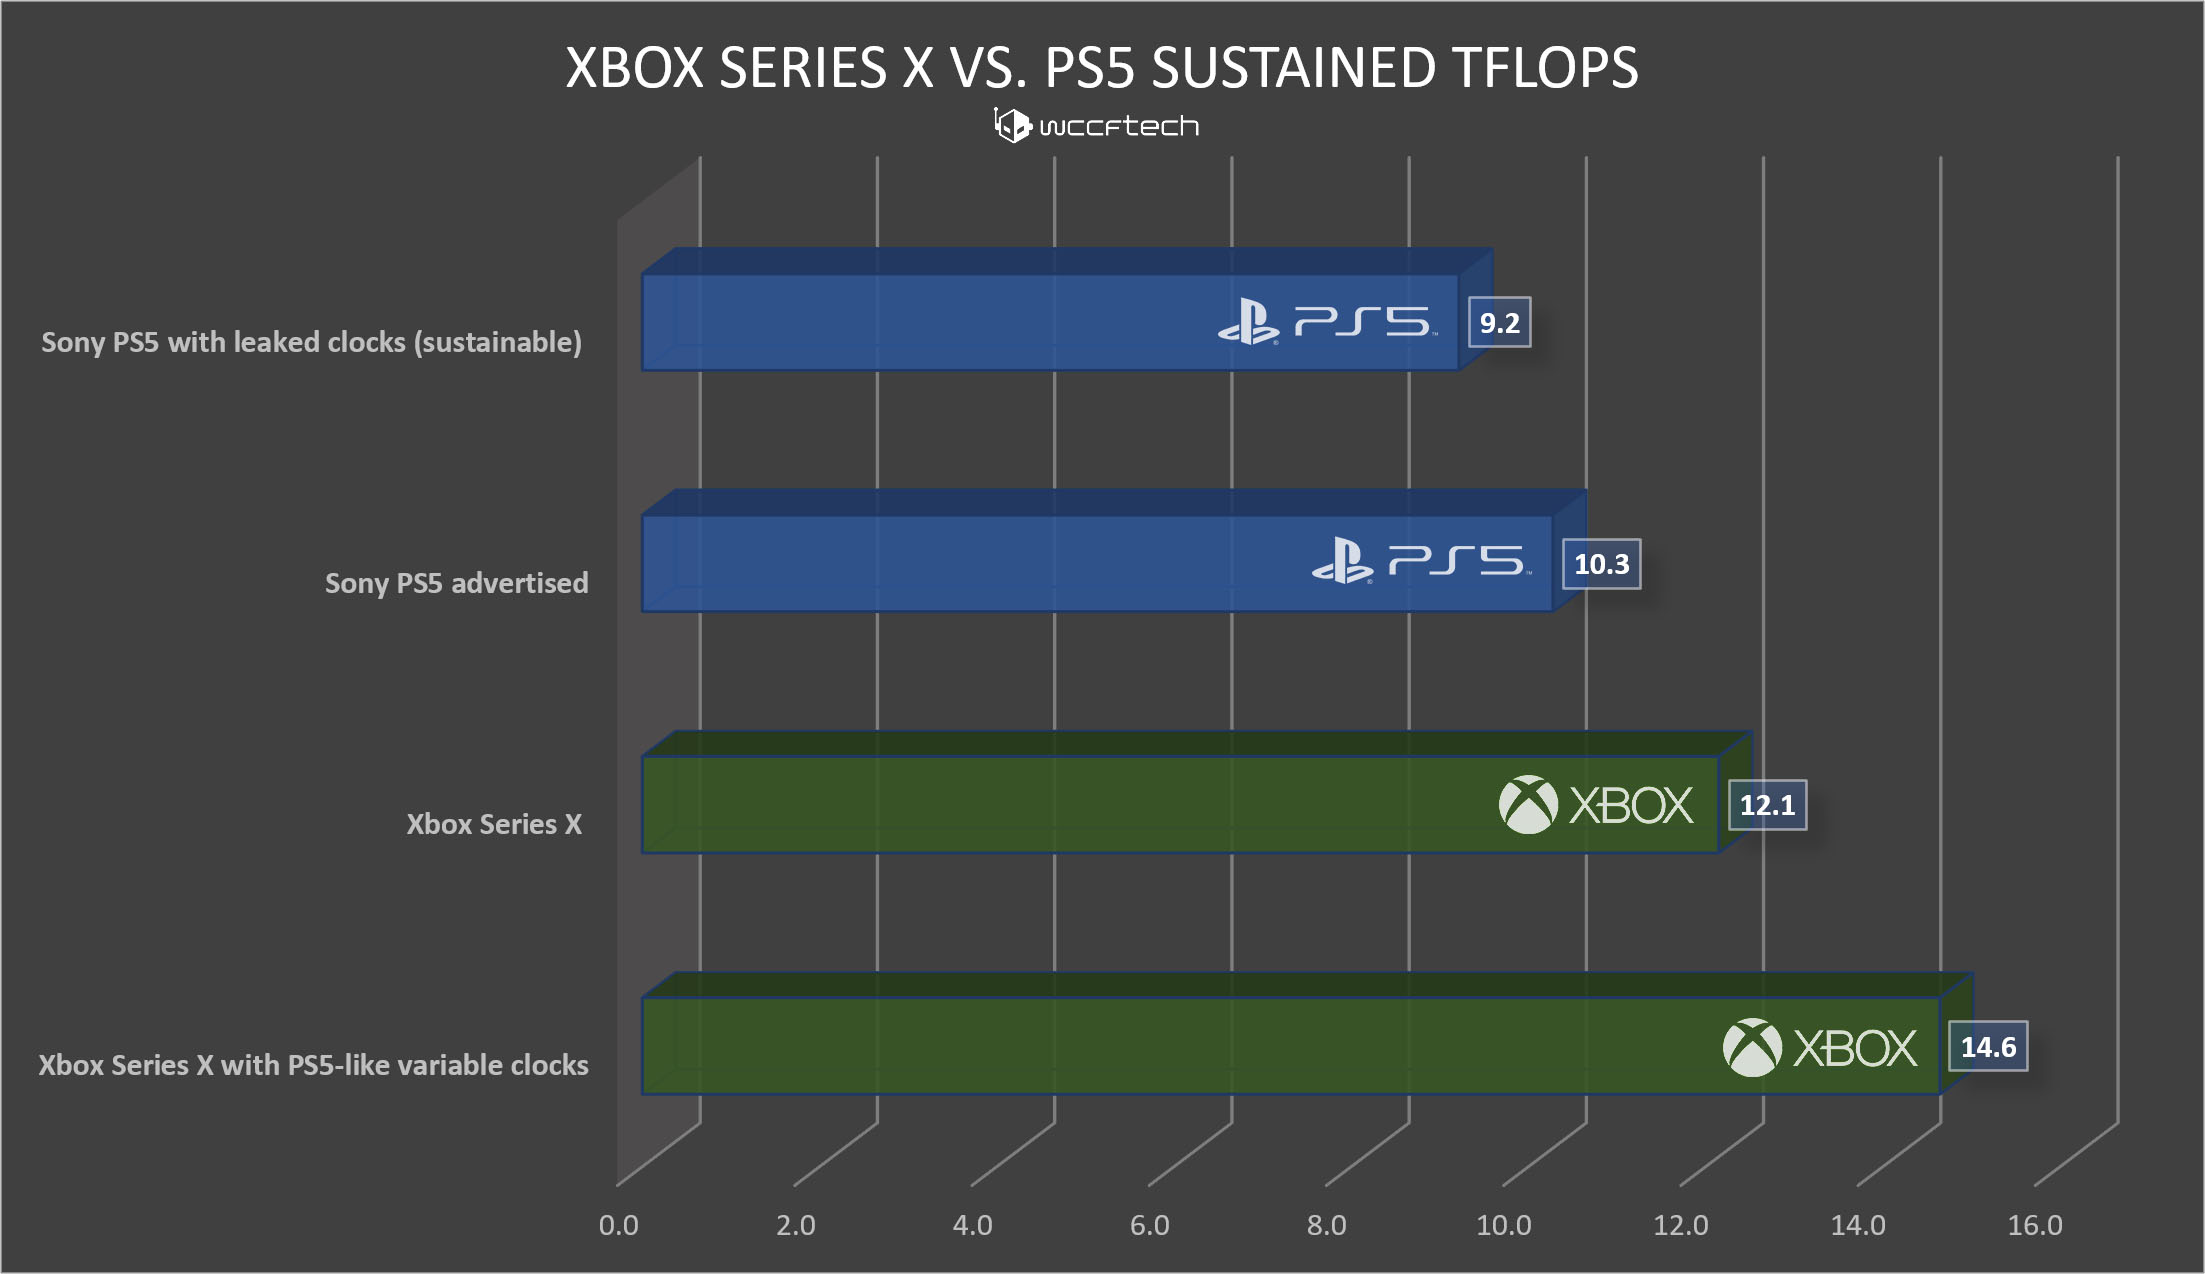 xbox series x vs sony ps5 sustained graphics performance tflops 2 - Xbox Series X price in Nigeria, release date, and full specs